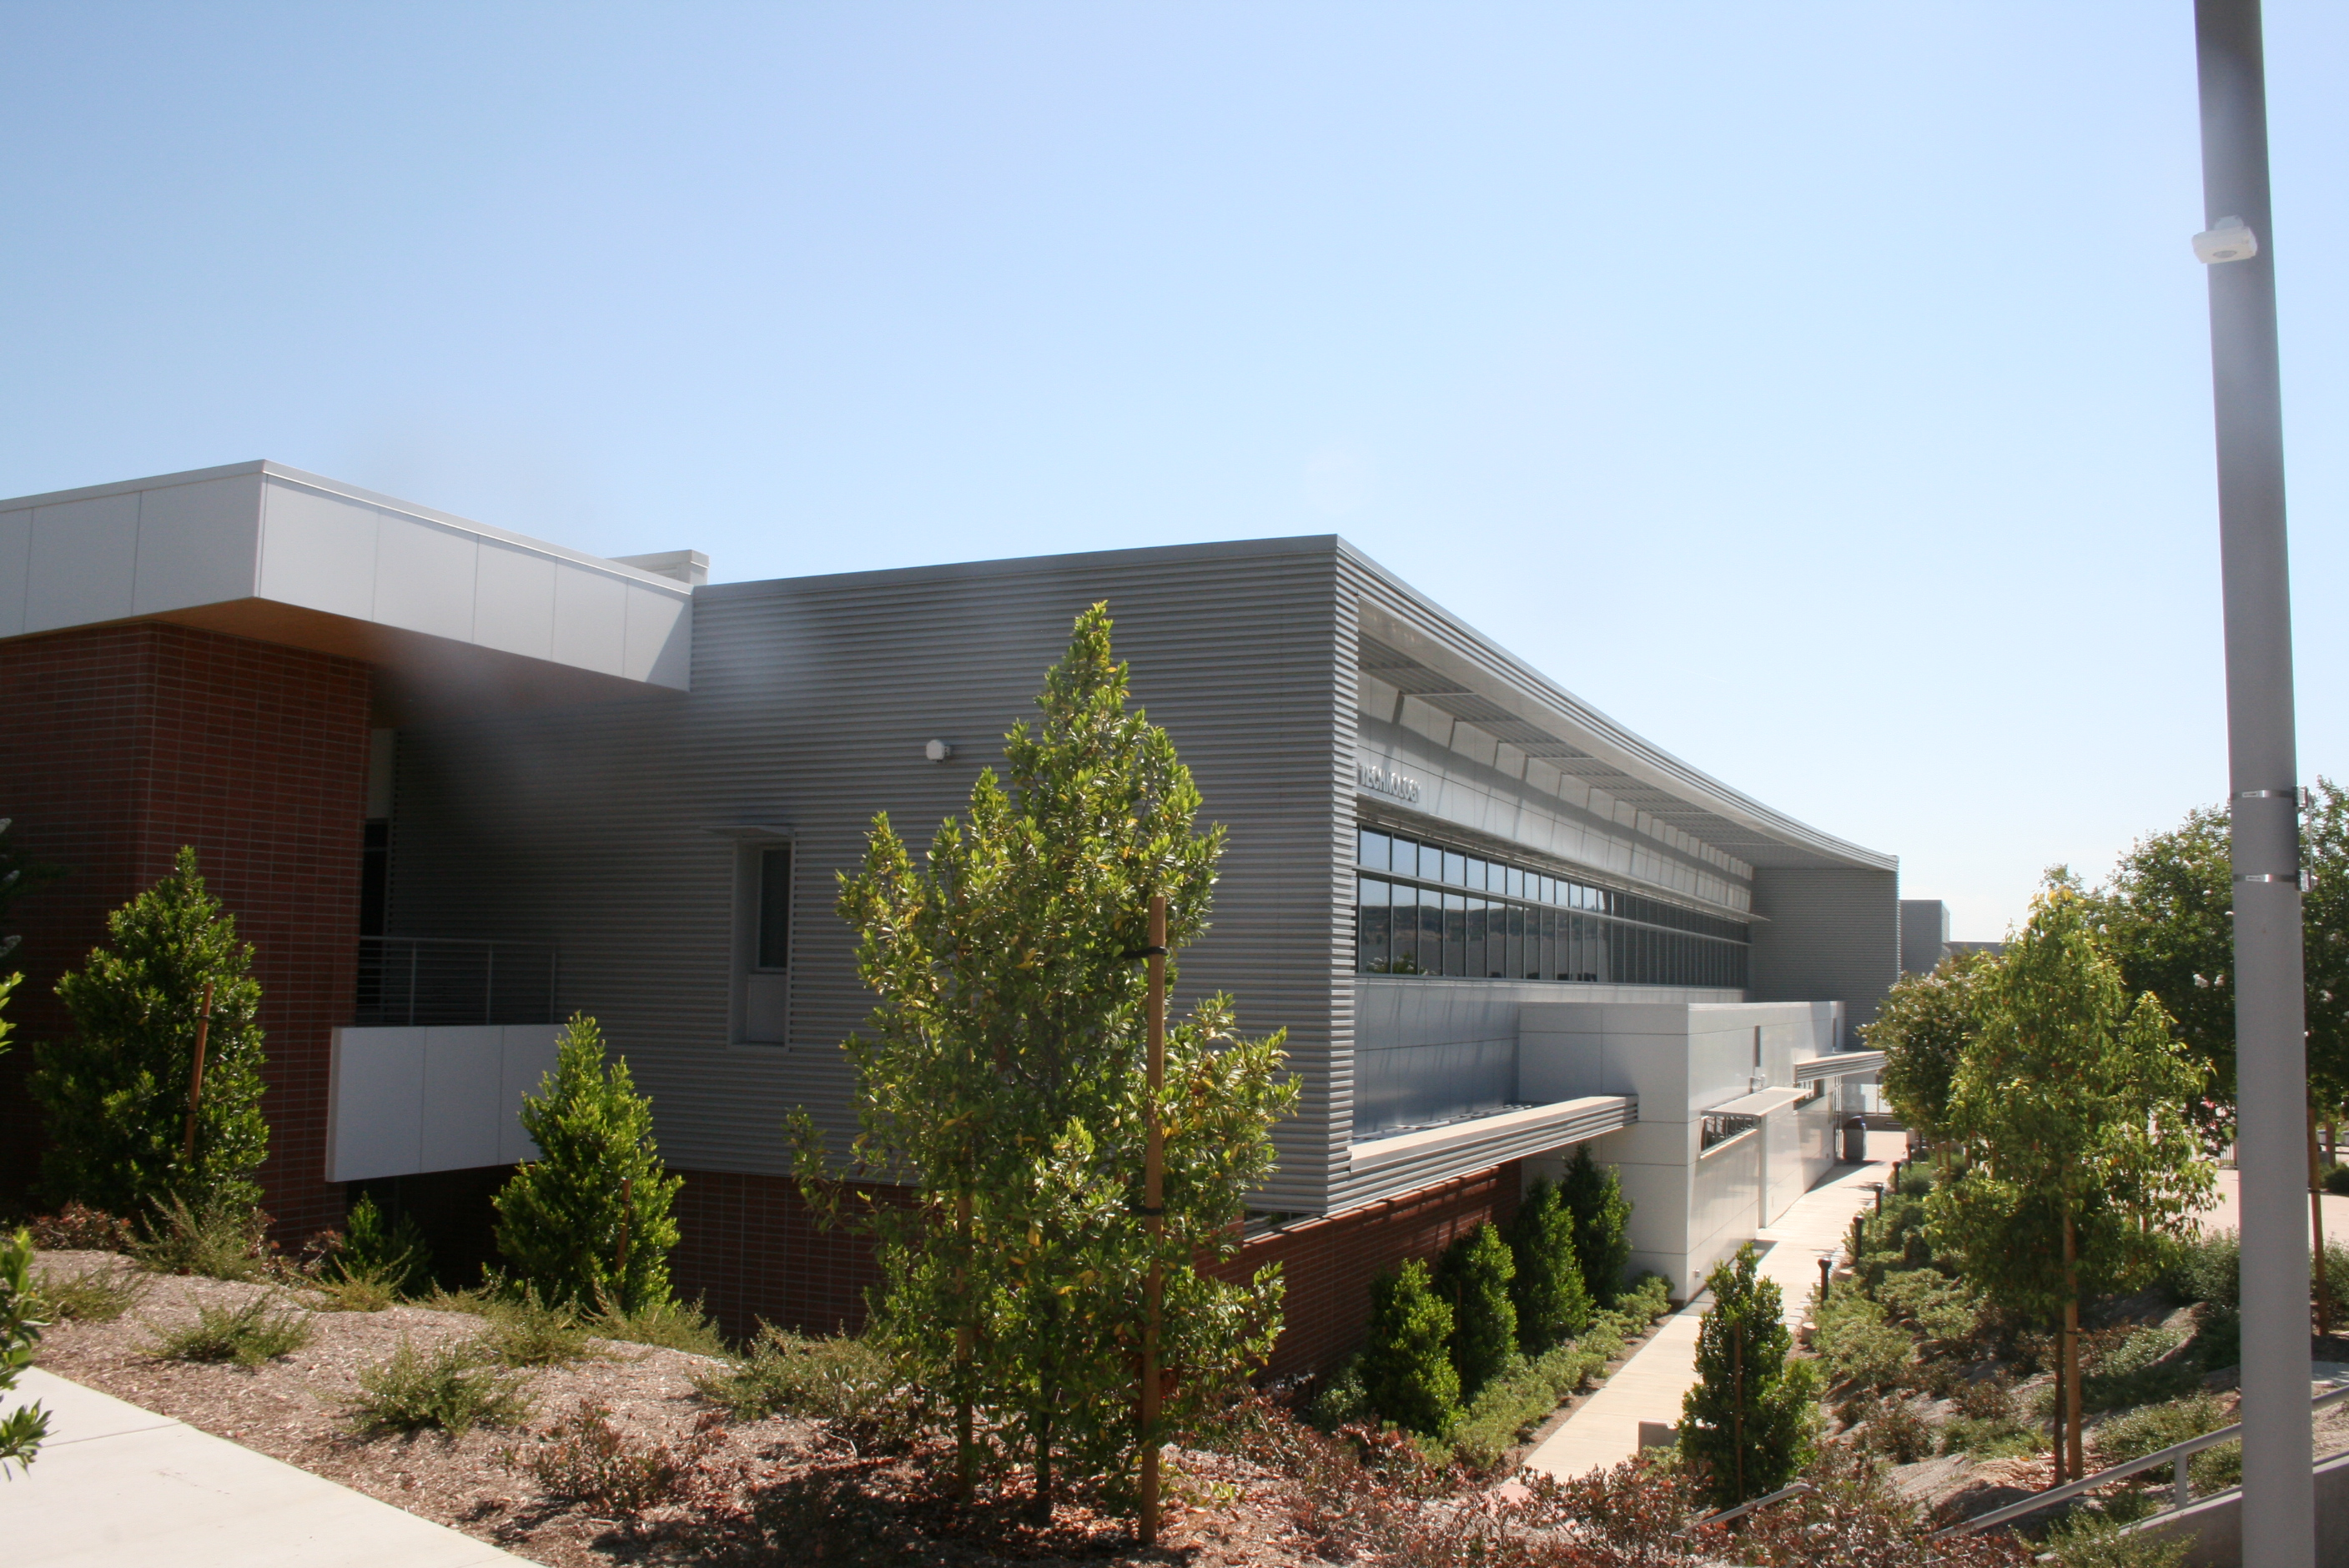 The HRM Culinary Arts facility is housed within the Business and Computer Technology Complex at Mt. San Antonio College in Walnut, California.